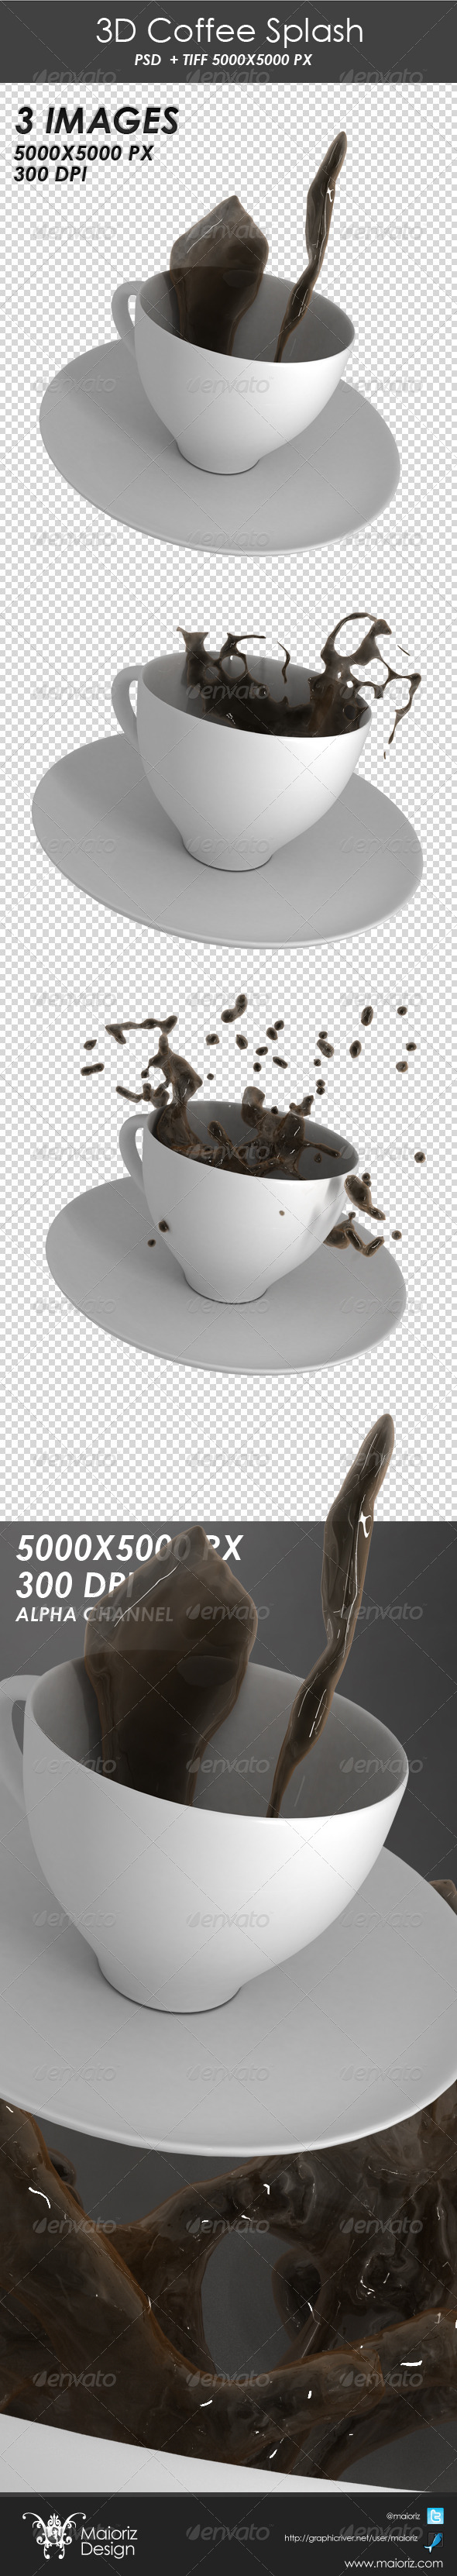 3D Coffee Splash - Objects 3D Renders